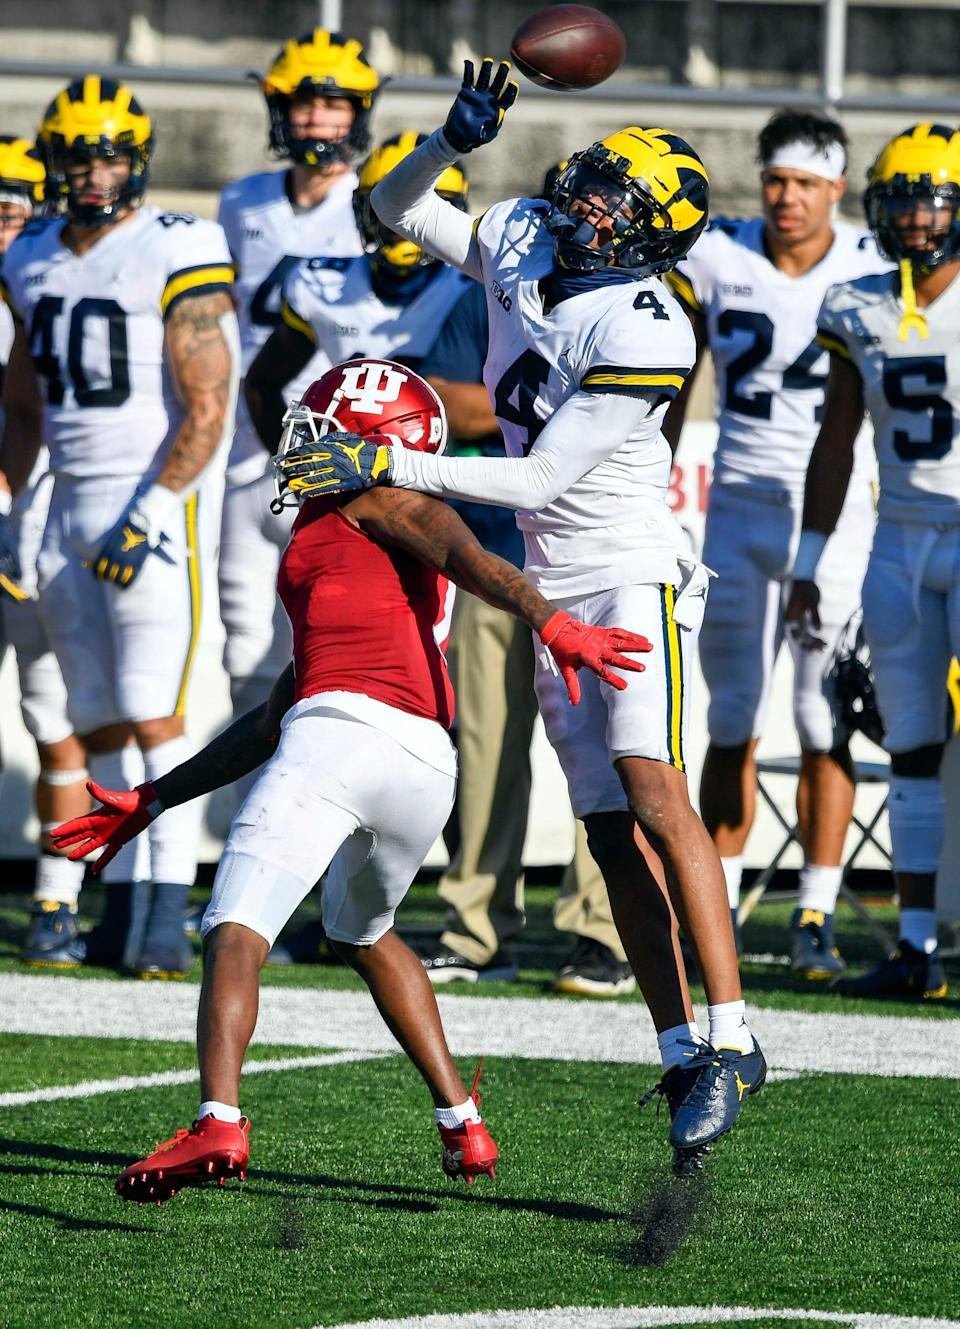 Michigan defensive back Vincent Gray prevents Indiana wide receiver Whop Philyor from catching a pass during the second half of U-M's 38-21 loss on Saturday, Nov. 7, 2020, in Bloomington, Indiana.